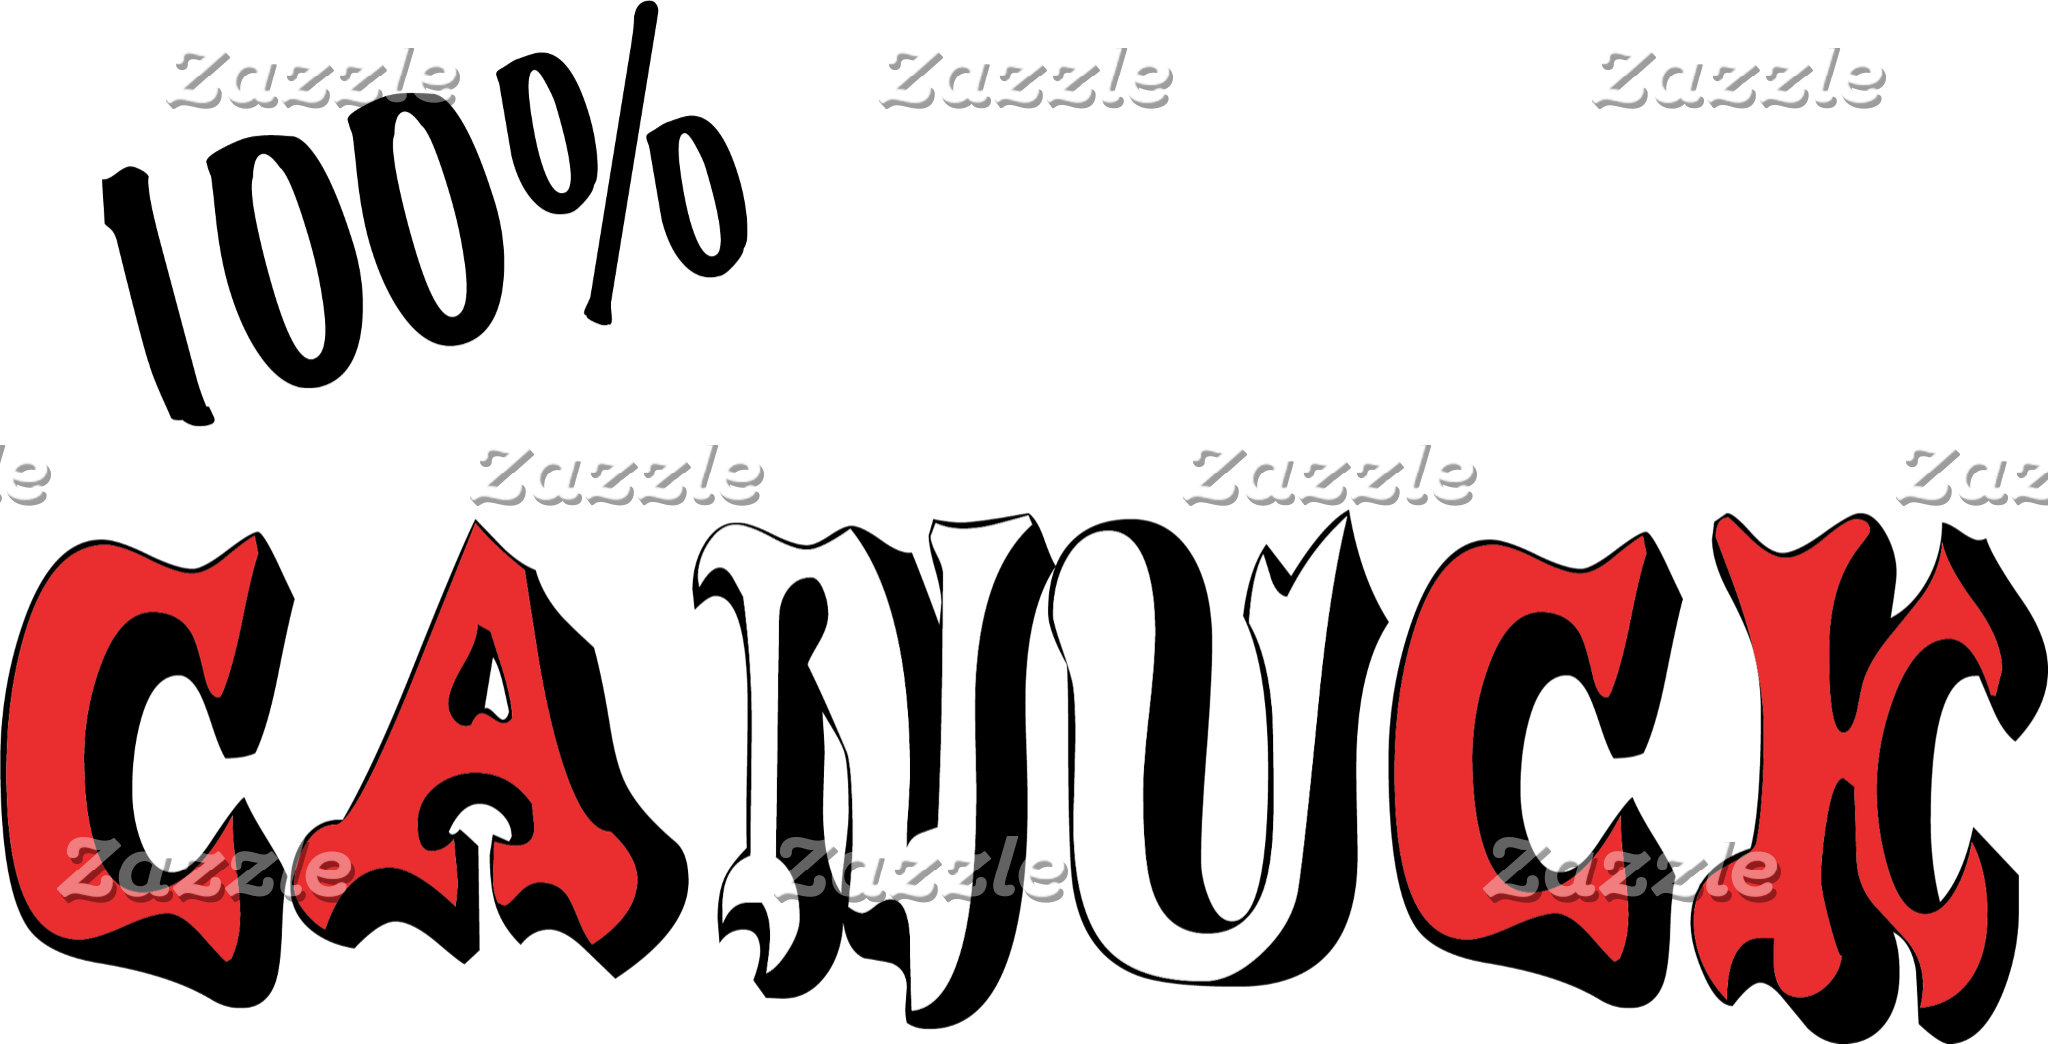 100% Canuck Canadian T-Shirt Gift Cards